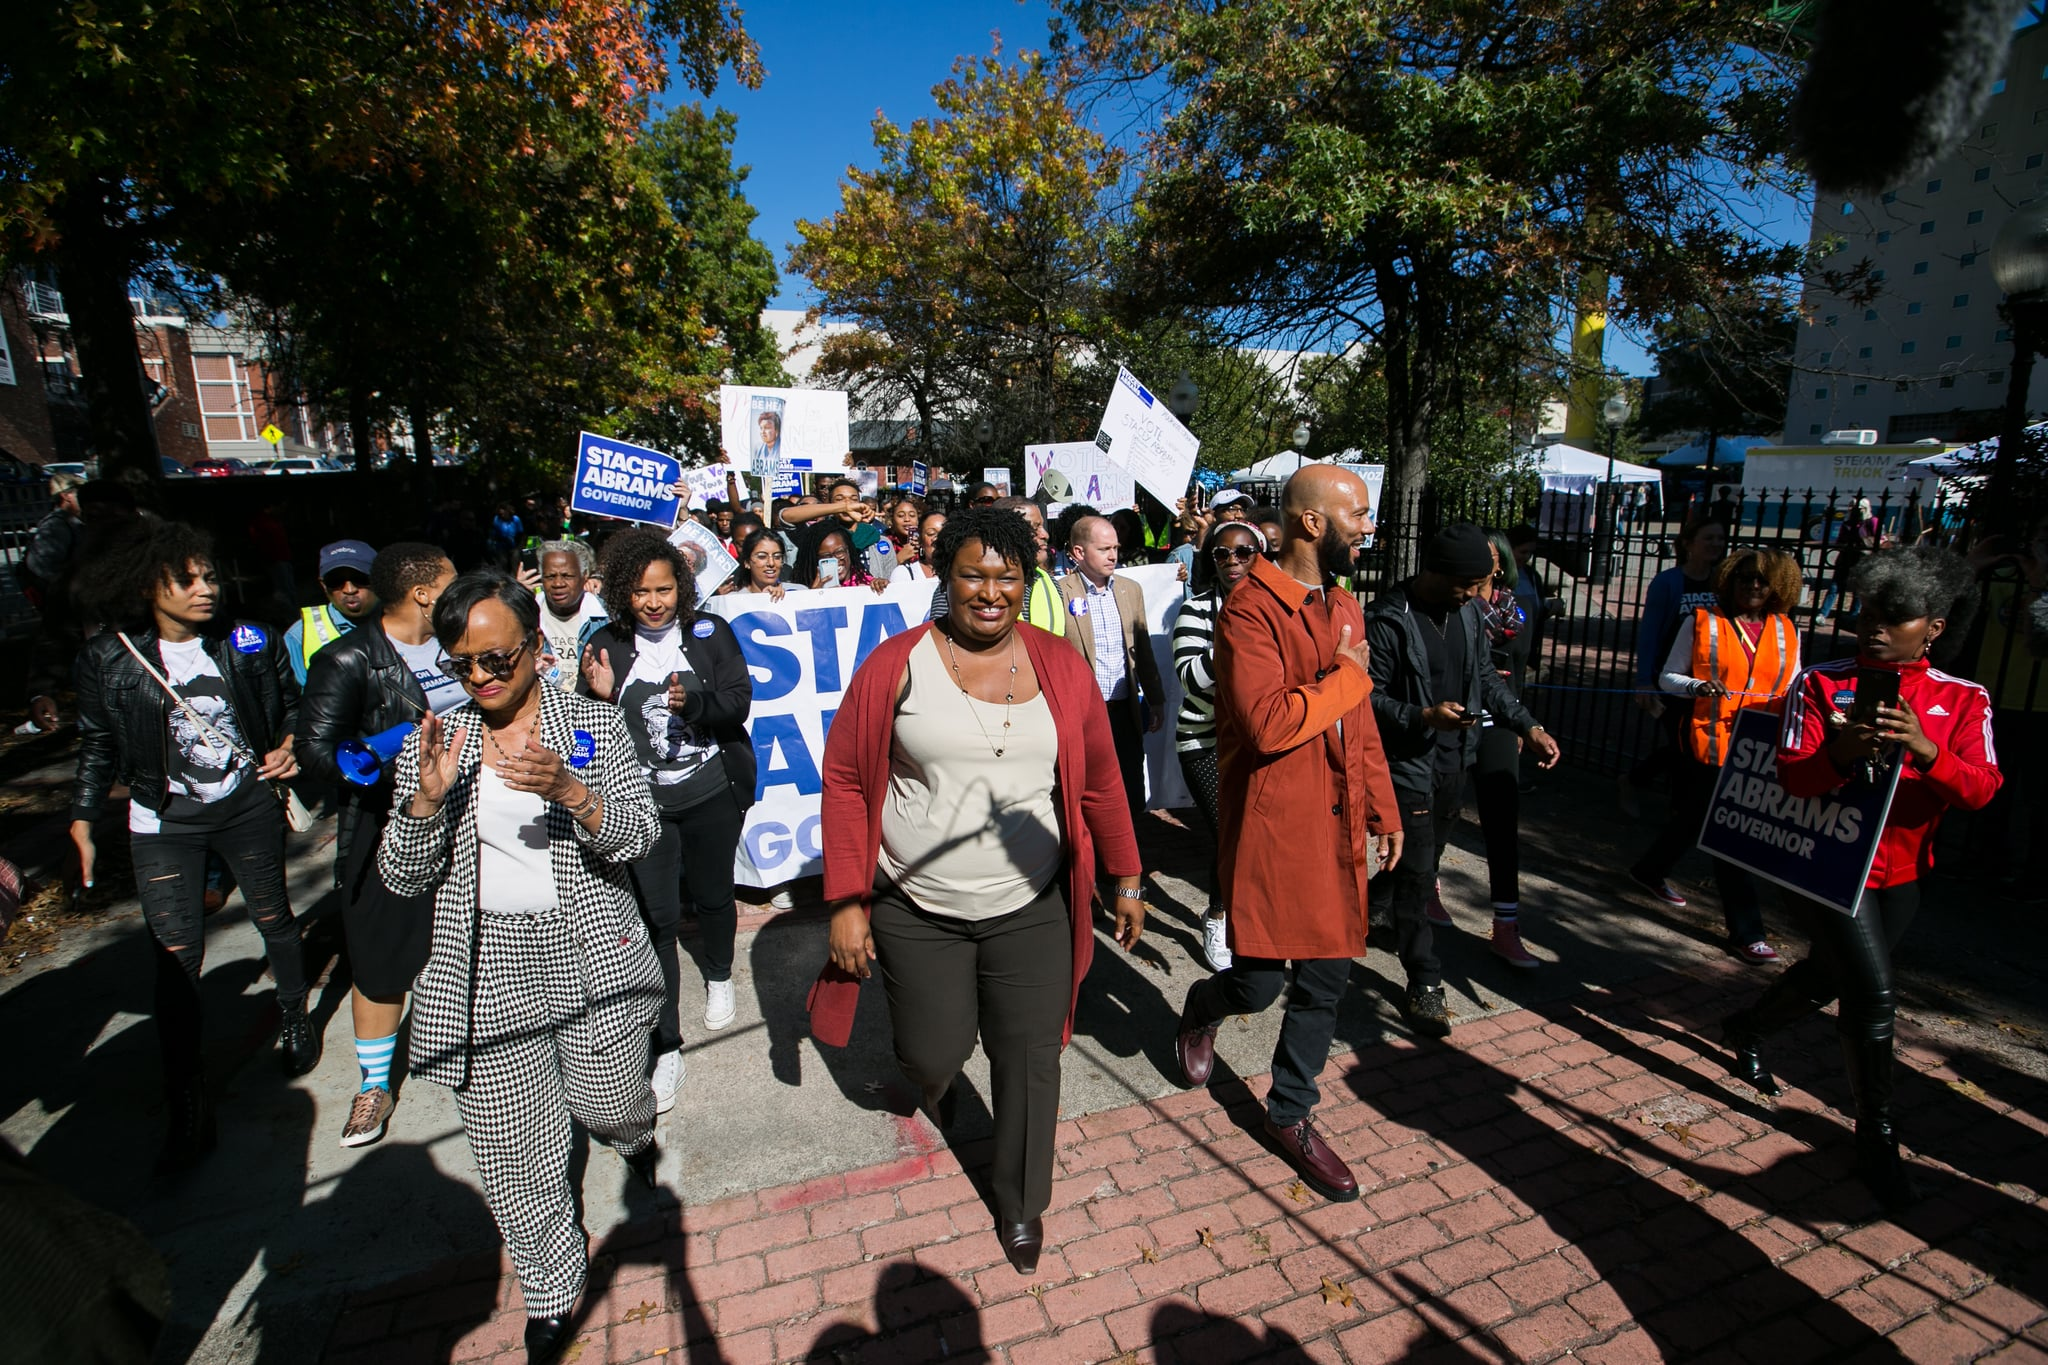 ATLANTA, GA - OCTOBER 28: Democratic Georgia Gubernatorial candidate Stacey Abrams and Grammy-winning artist Common leads voters during a